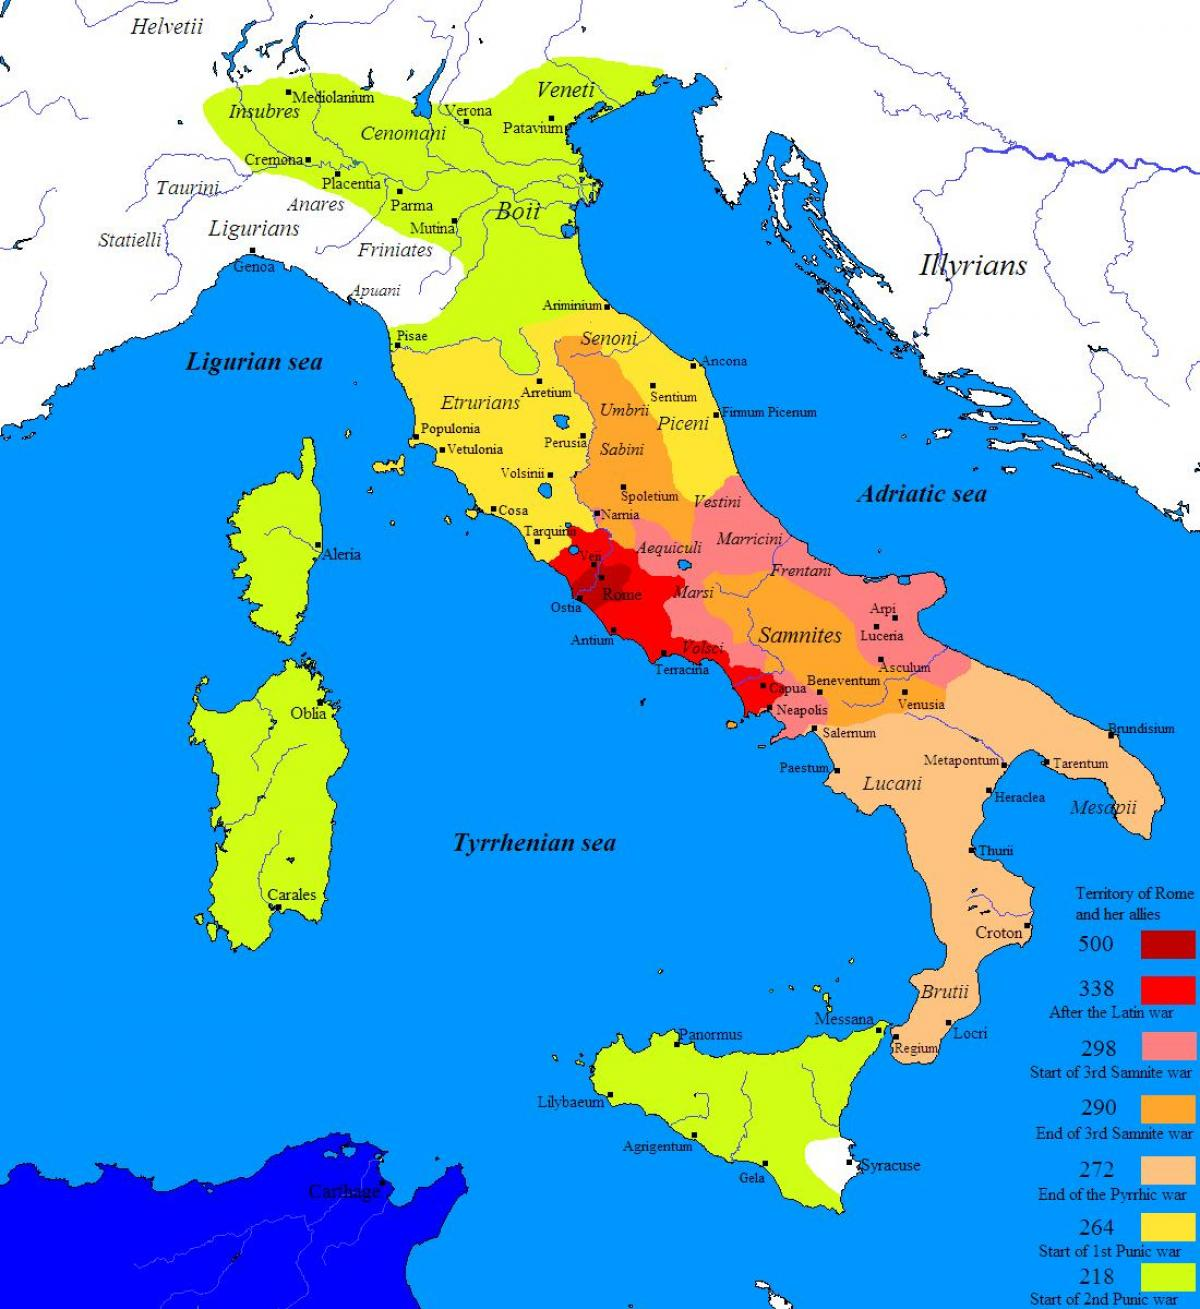 Map of ancient Rome and surrounding areas